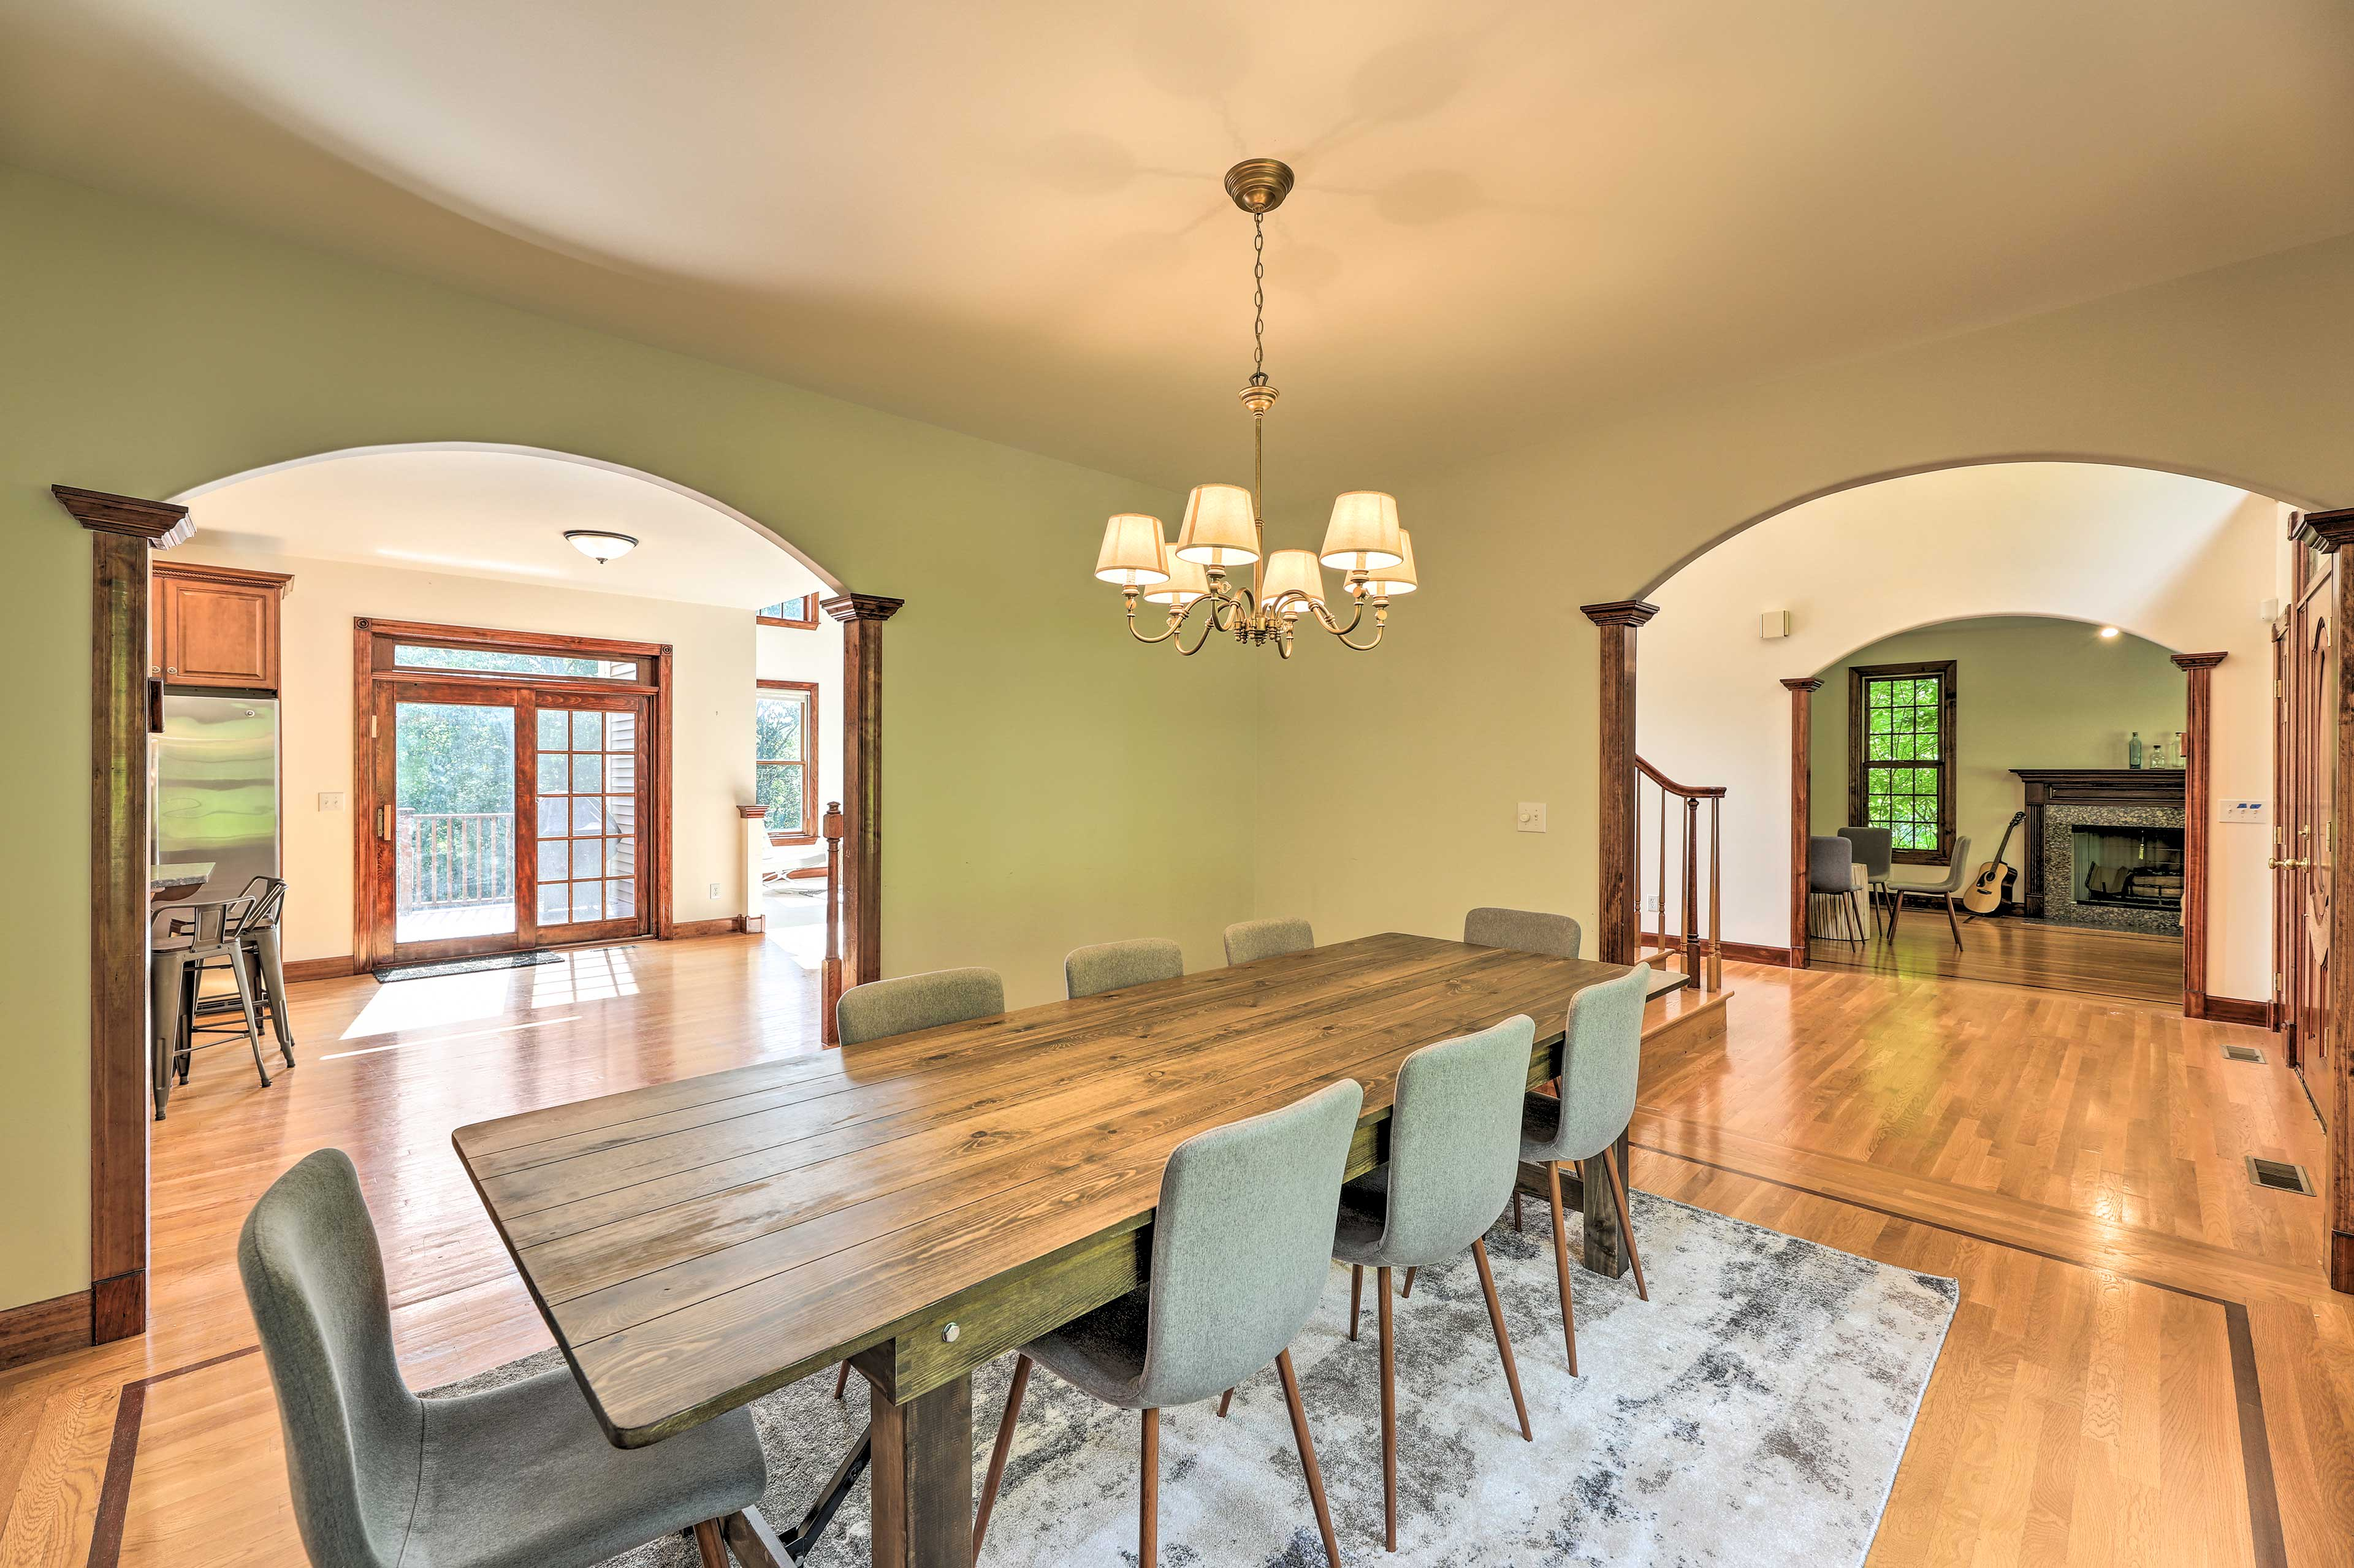 The dining room boasts a beautiful wooden table fit for your special meals.